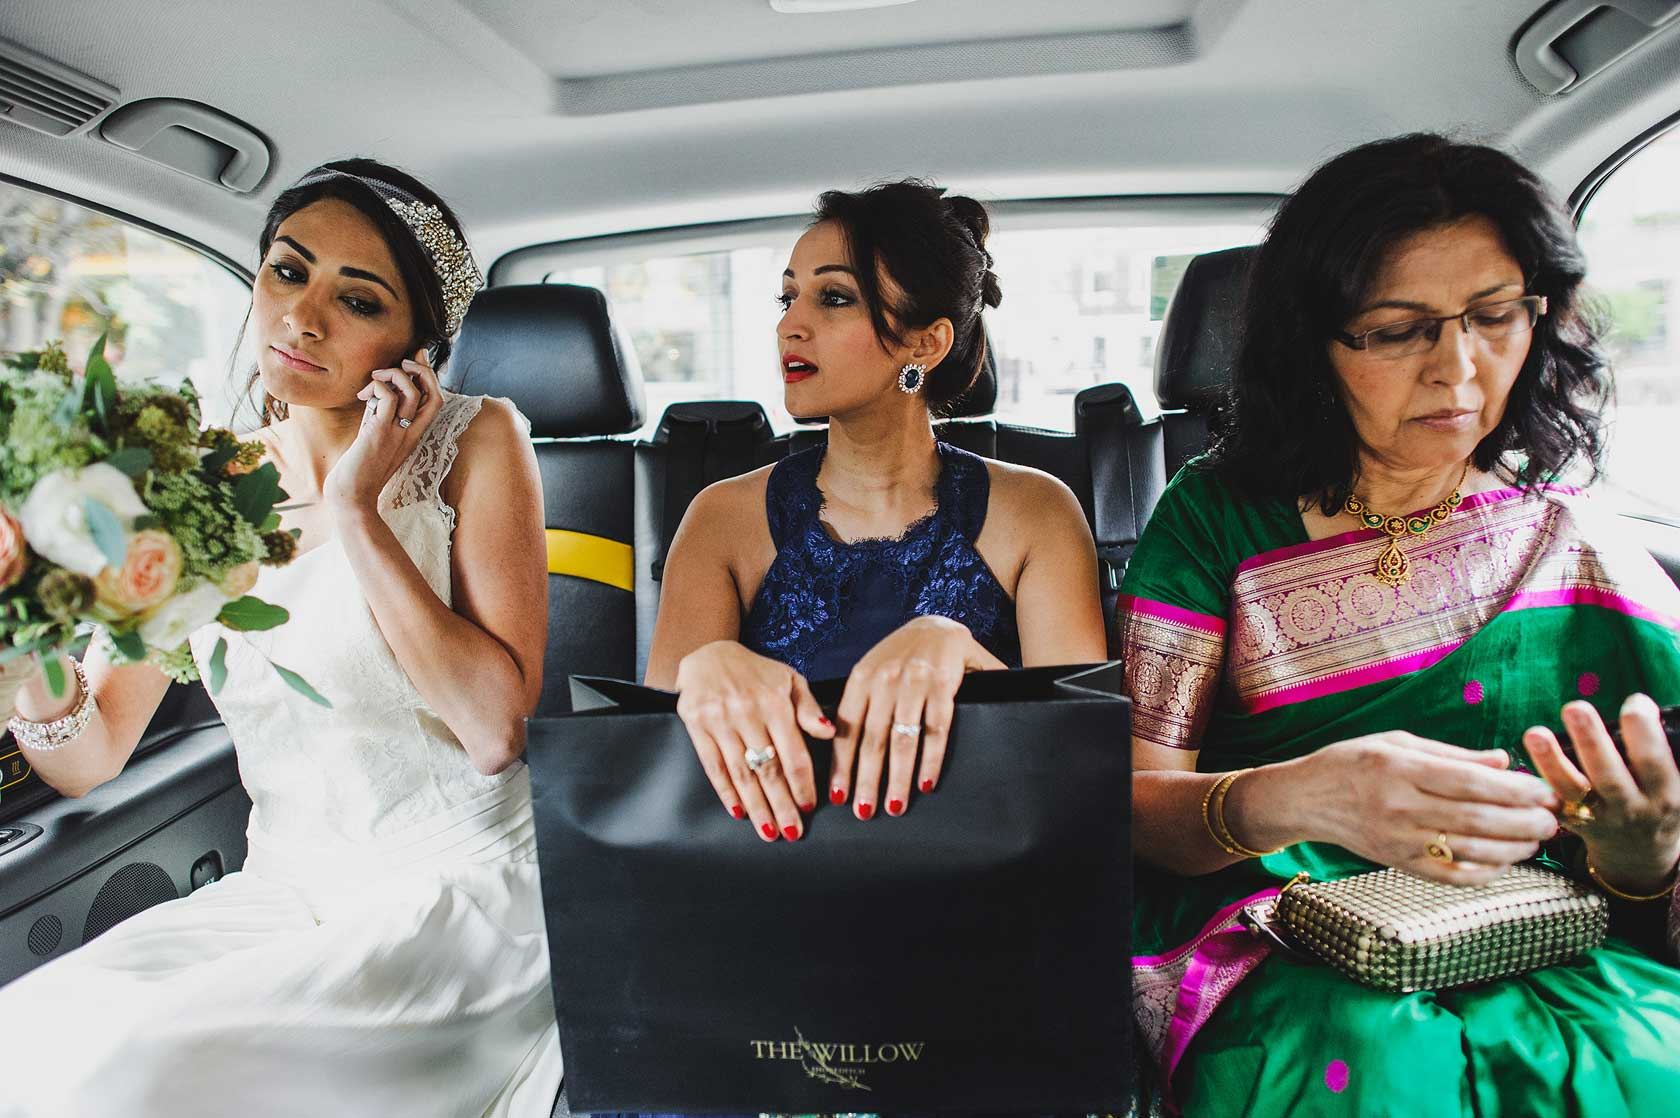 Zetter Townhouse Wedding Photographer in London